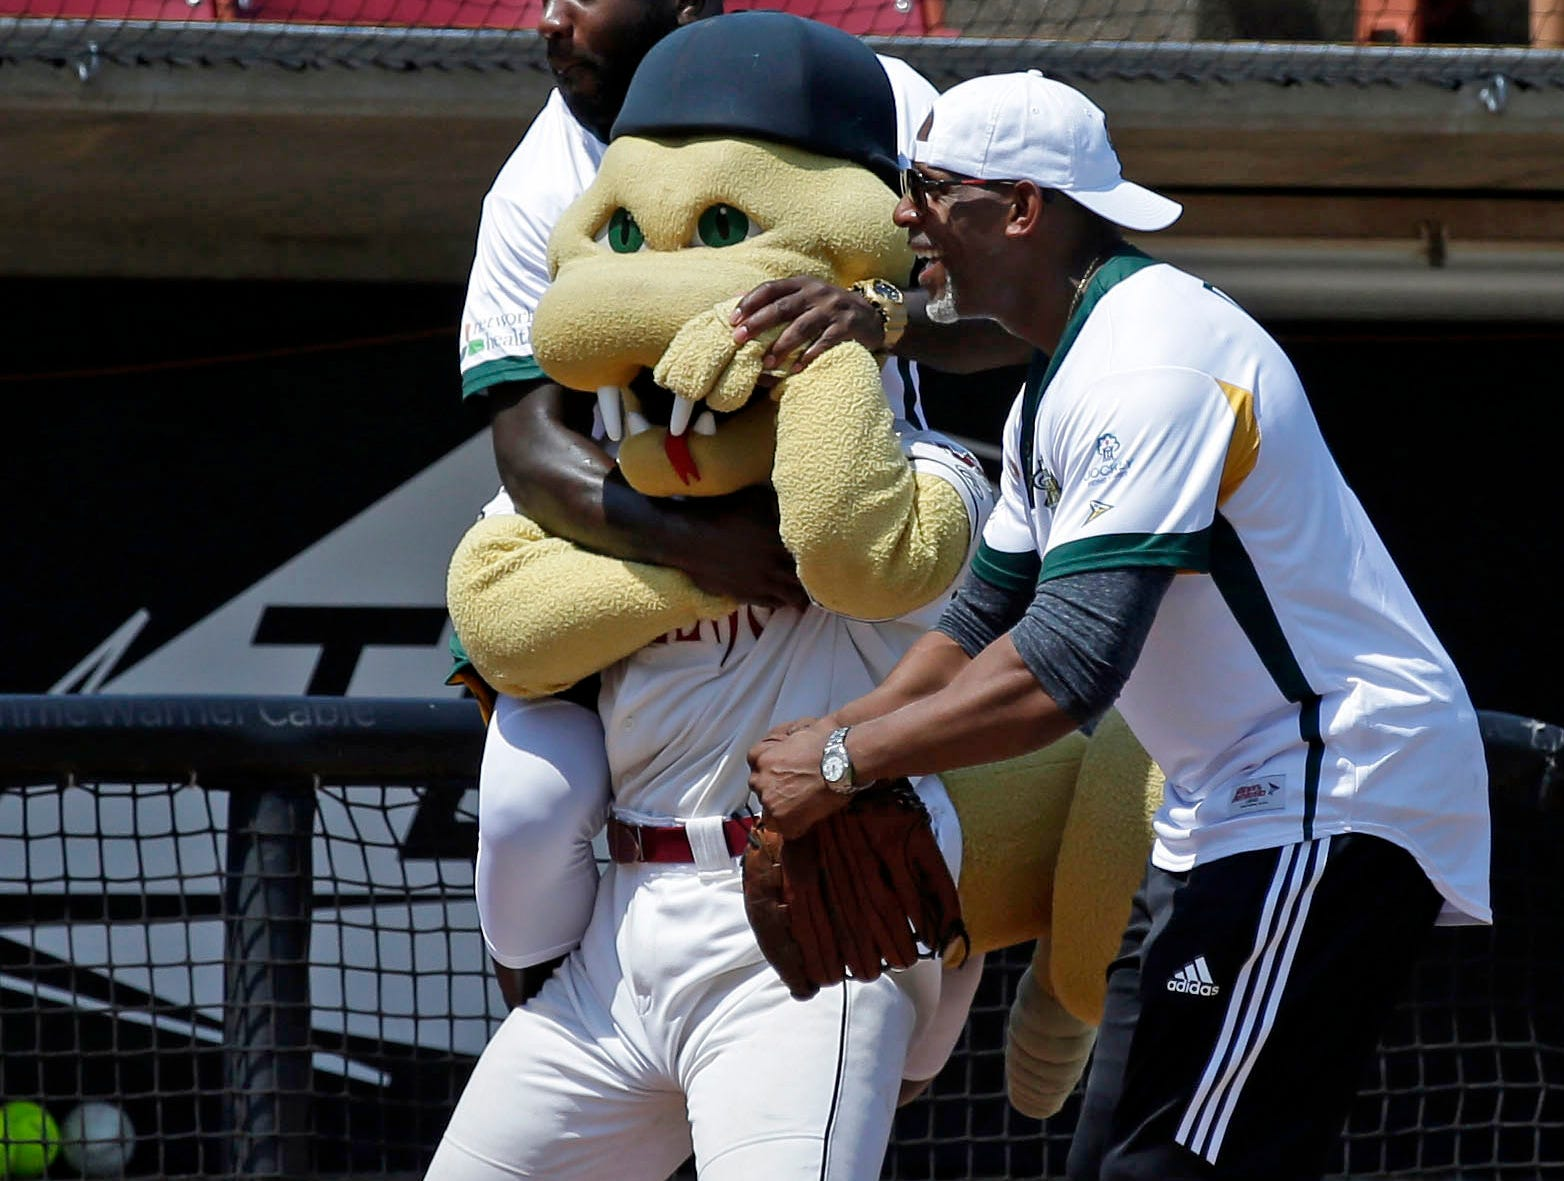 Fang engages in hijinks during the Donald Driver charity softball game Sunday, August 5, 2018, at Neuroscience Group Field at Fox Cities Stadium in Grand Chute, Wis.